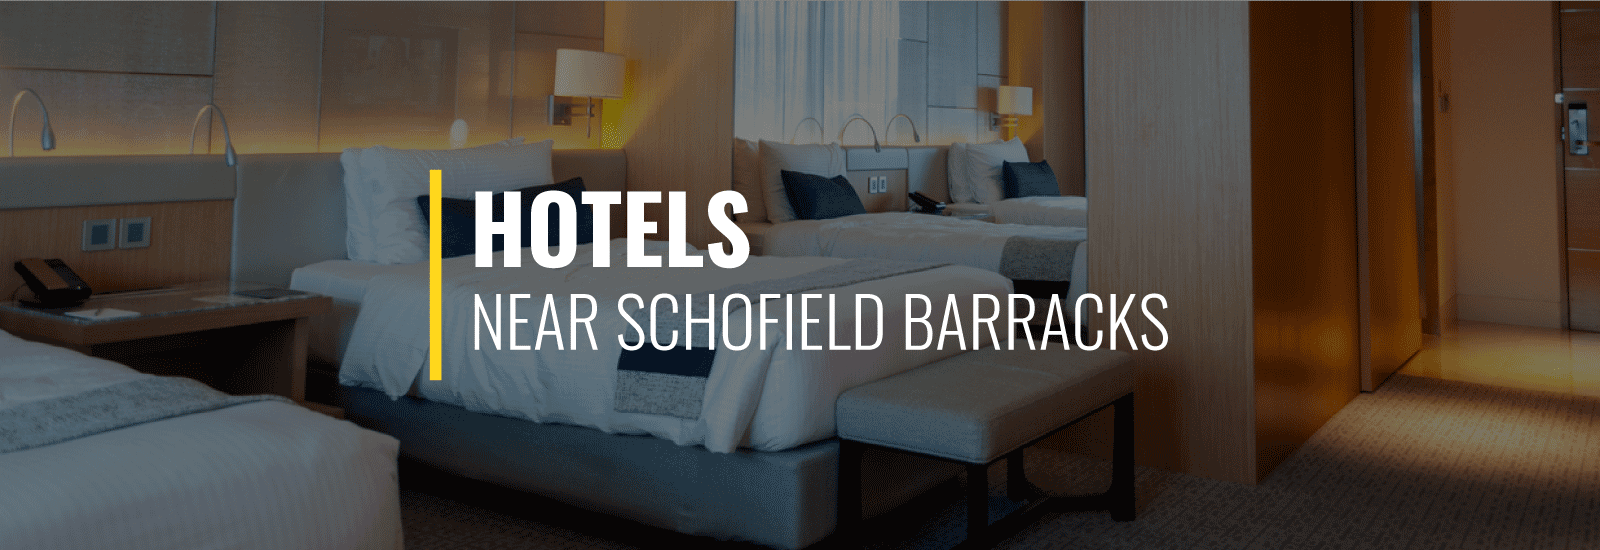 Schofield Barracks Hotels